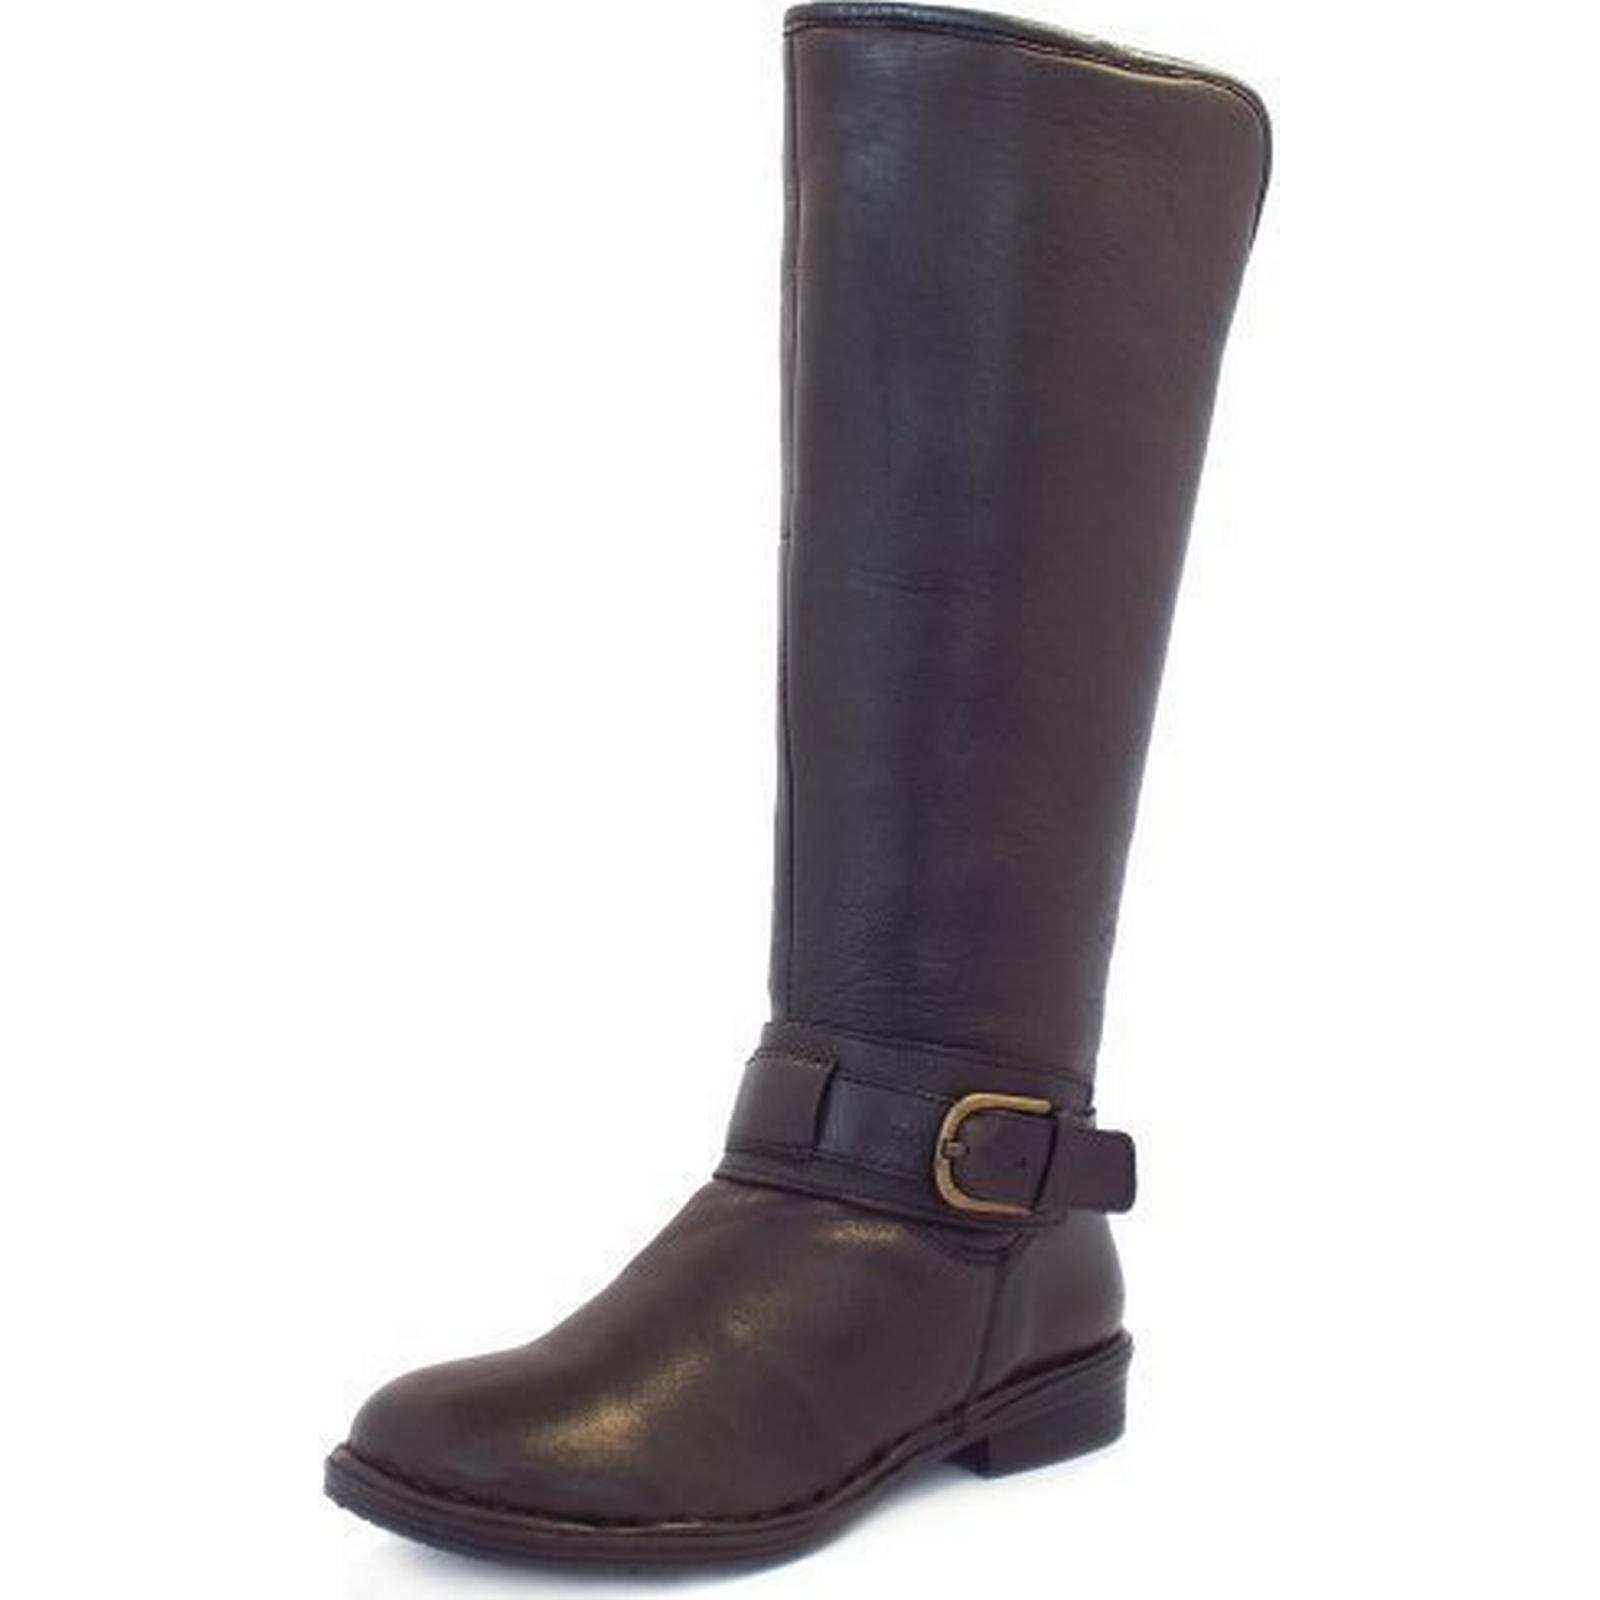 Lotus CHARLIE LOTUS LADIES LONG LONG LADIES BOOTS Size: 41, Colour: BROWN 607ae2